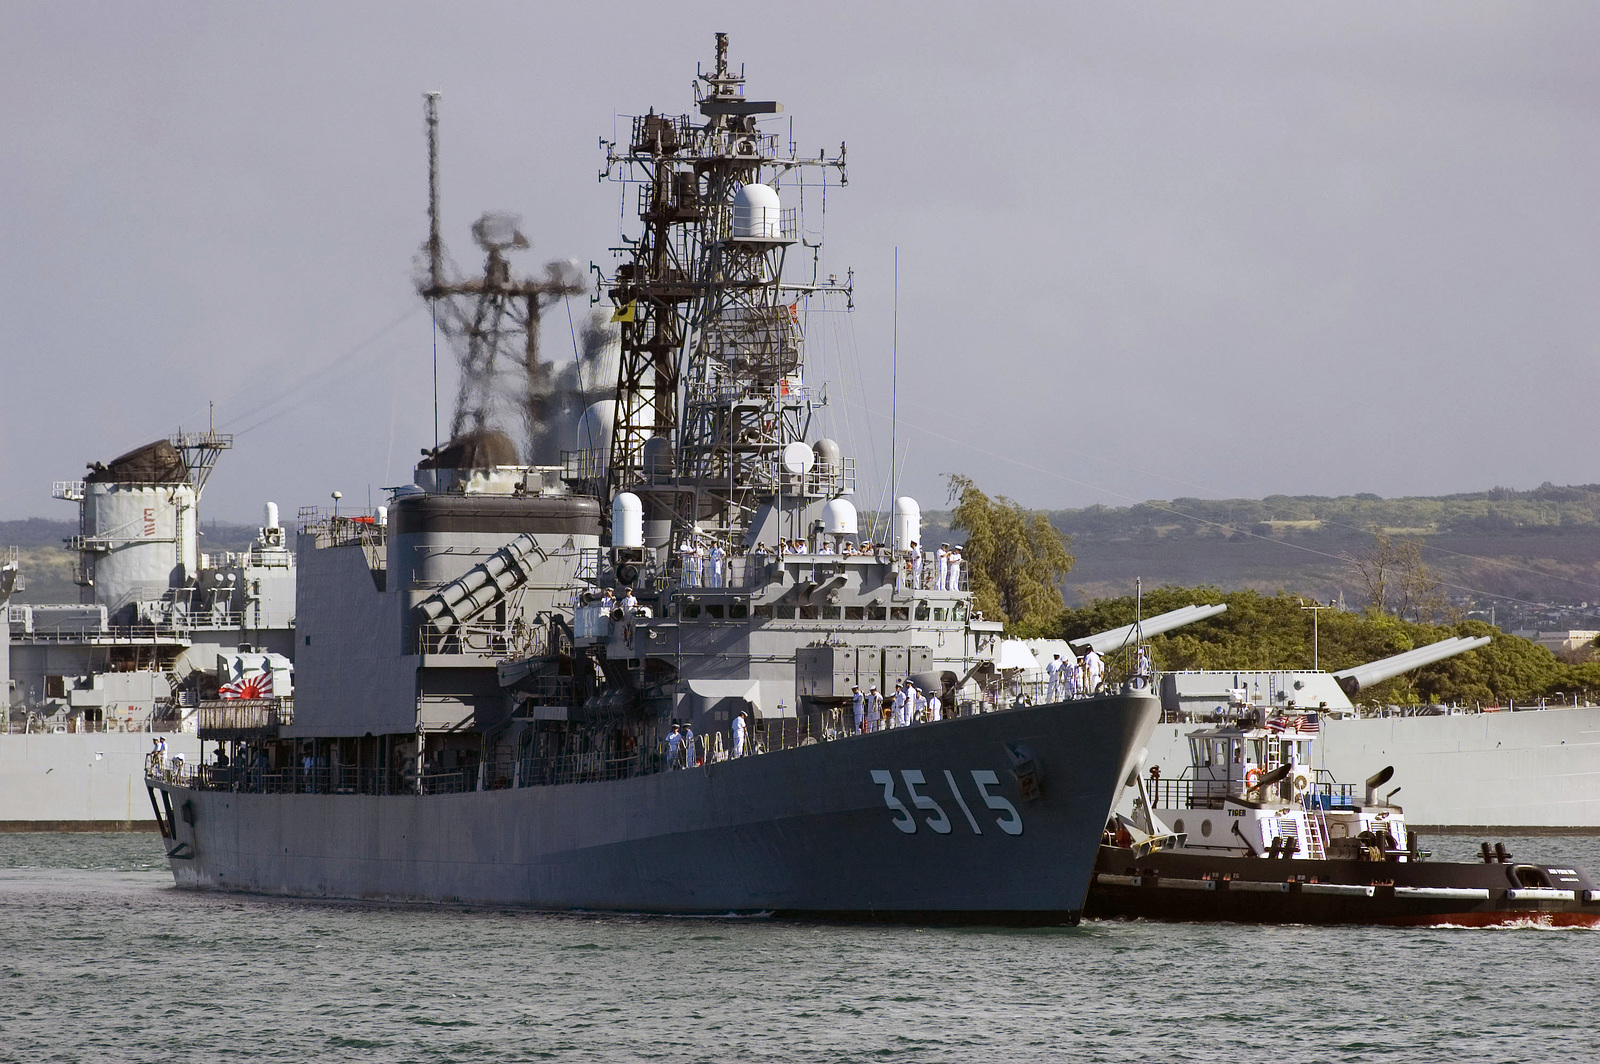 The Japanese Maritime Self Defense Force JDS YAMAGIRI (TV 3515) is assisted by a tugboat as it passes the USS MISSOURI Memorial at Naval Station Pearl Harbor, Hawaii, on Aug. 18, 2006. More than 1,000 Japanese Sailors are visiting Pearl Harbor during a worldwide training and international relations cruise. (U.S. Navy photo by Mass Communications SPECIALIST 1ST Class Dennis C. Cantrell) (Released)